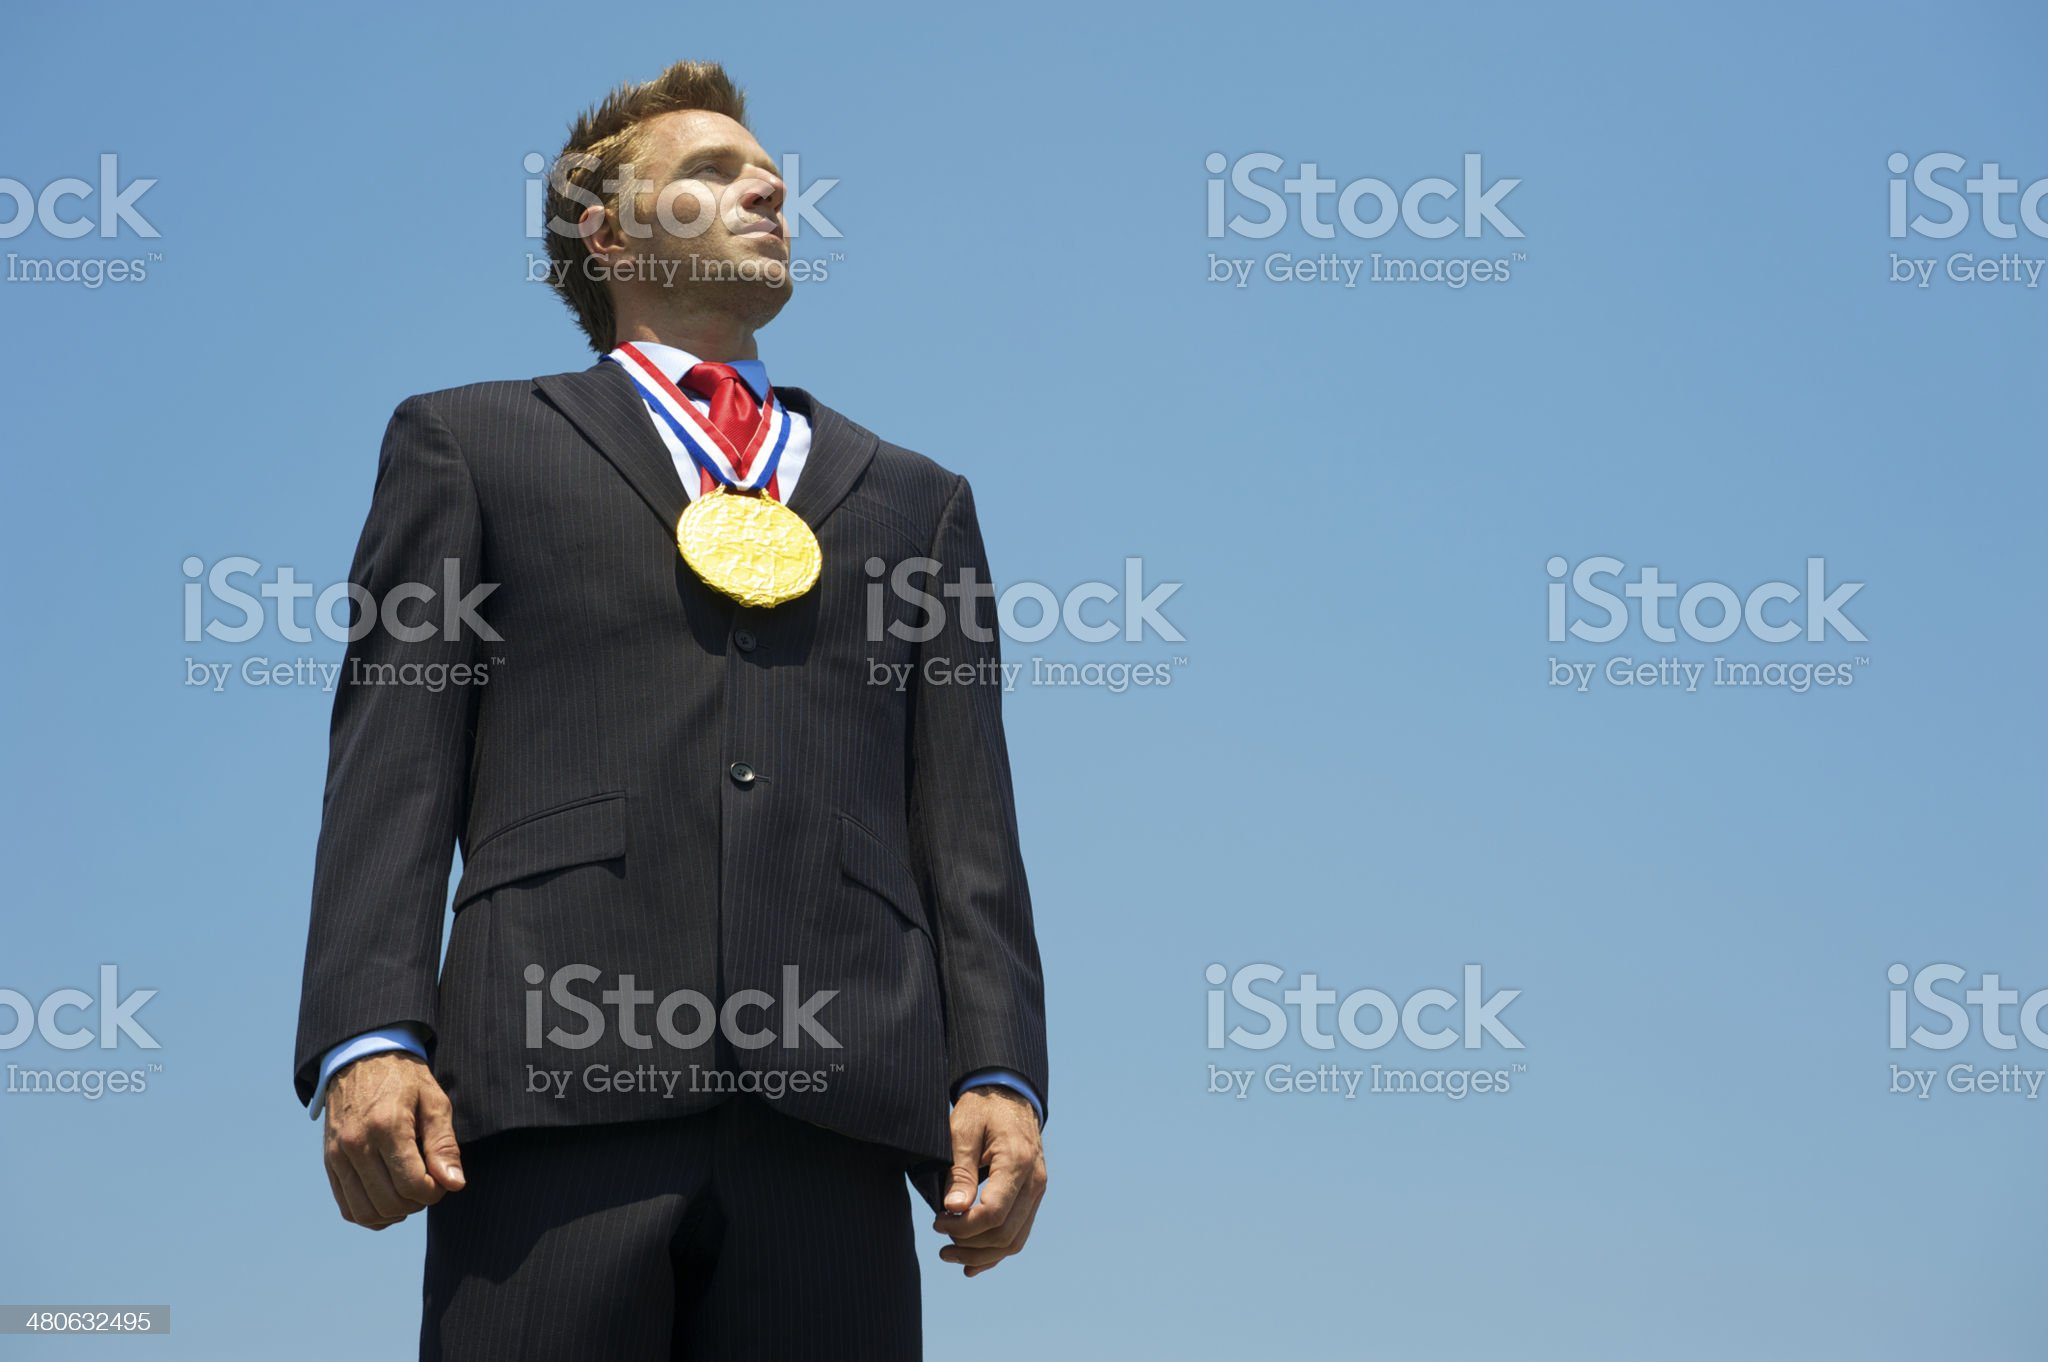 Proud Businessman Stands with Gold Medal royalty-free stock photo